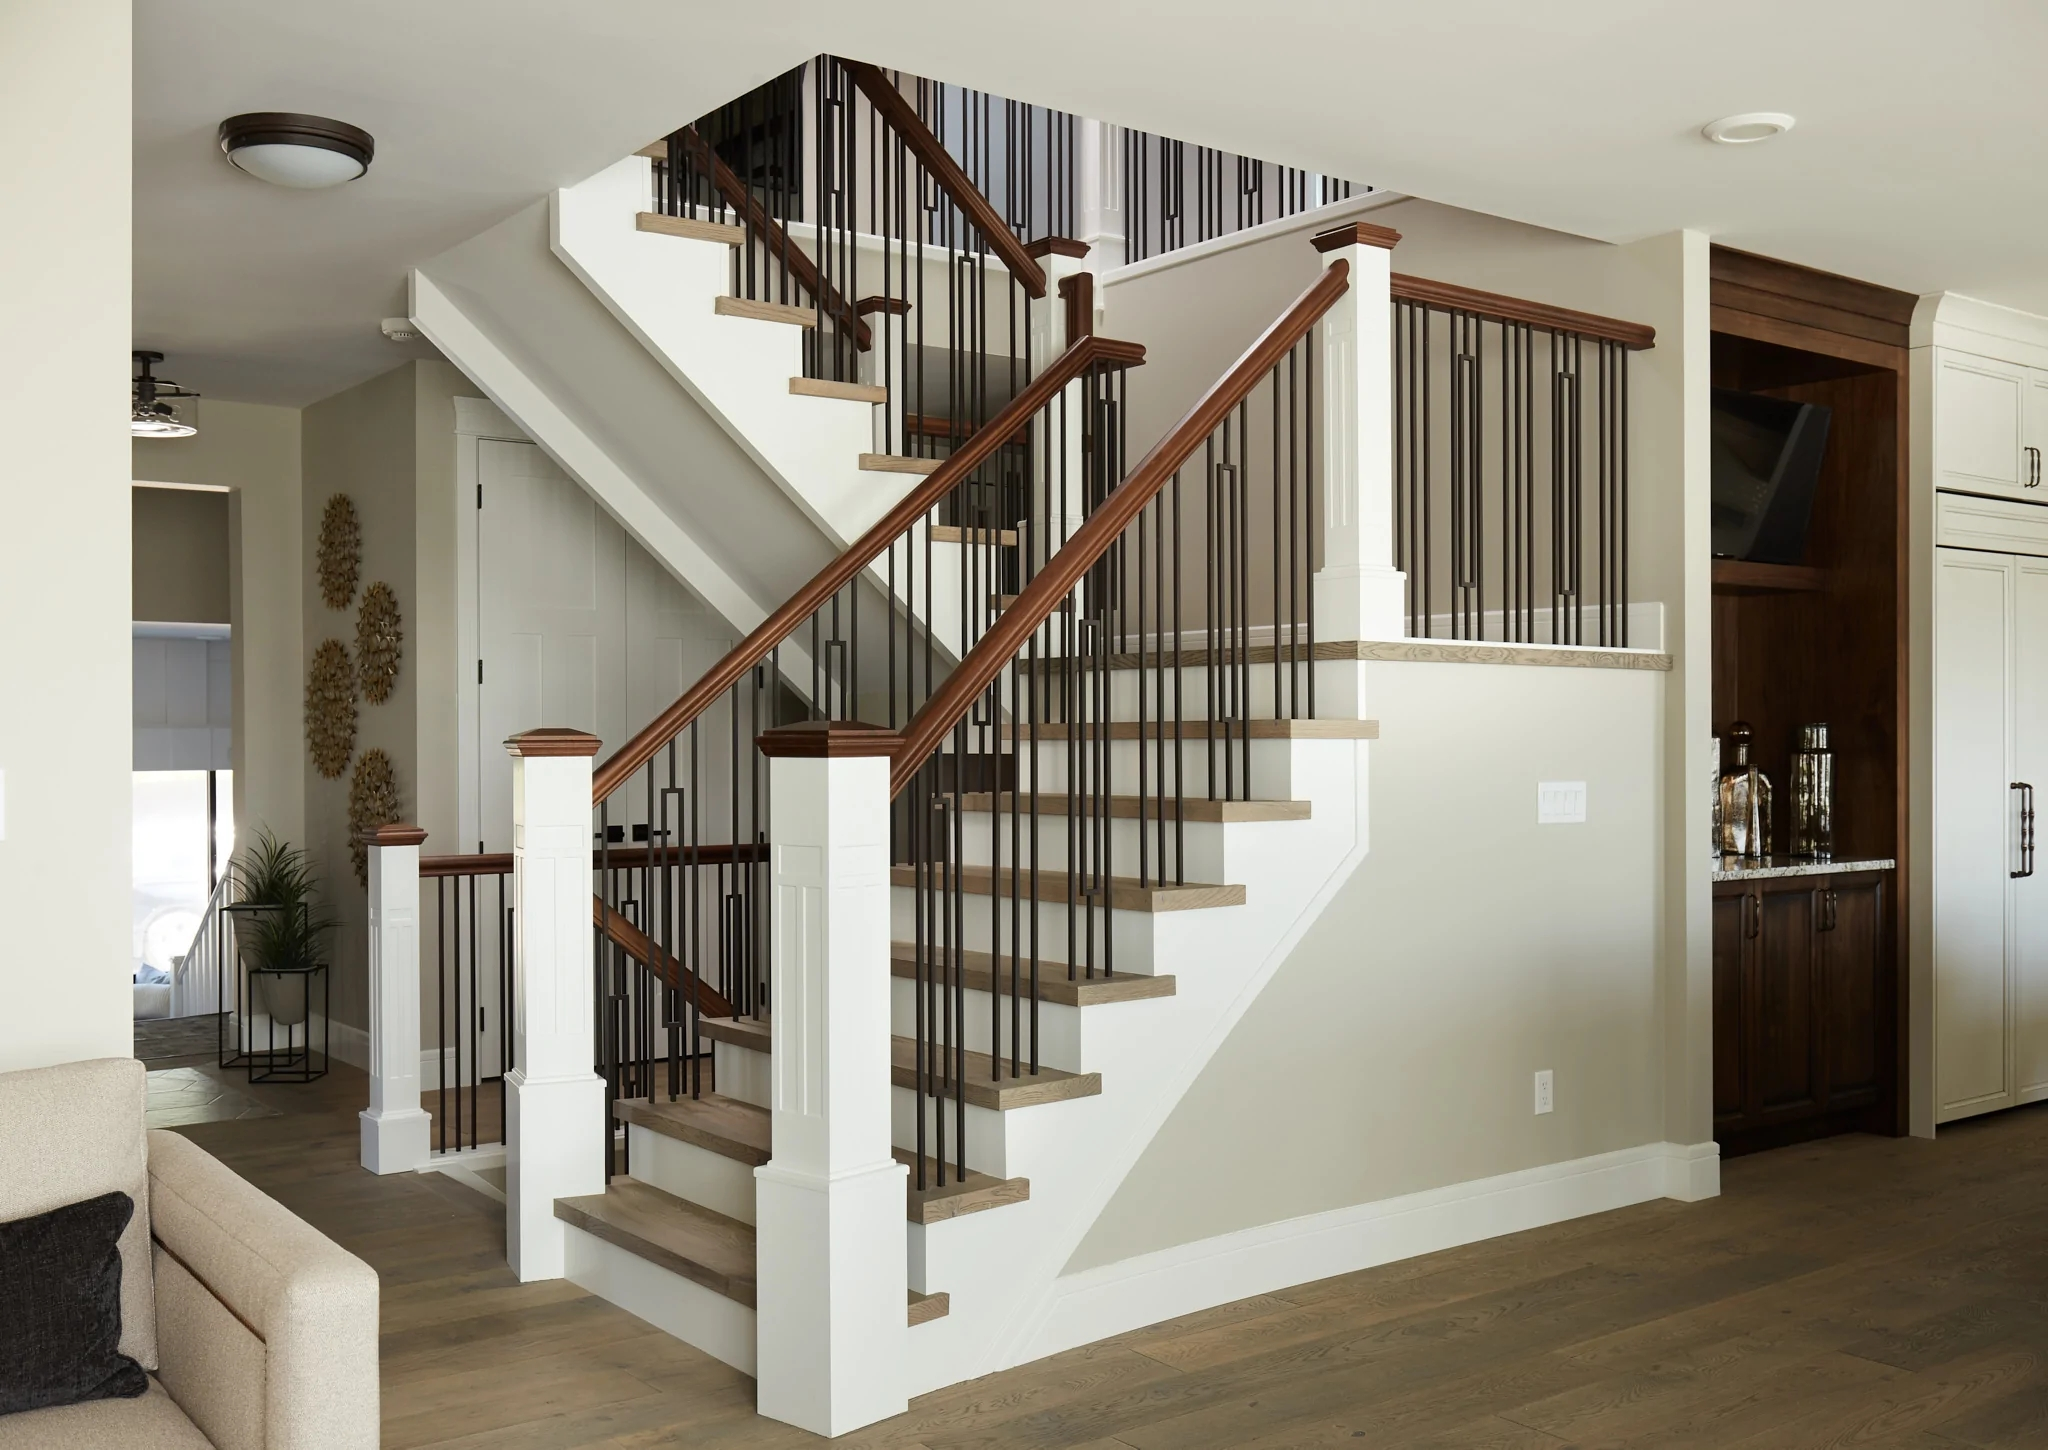 Guide 5 Keys To Unlock Craftsman Design For Your Stairs – Custom | Stair Railing And Balusters | Brushed Nickel | Free Standing | Inexpensive | Deck | Wood